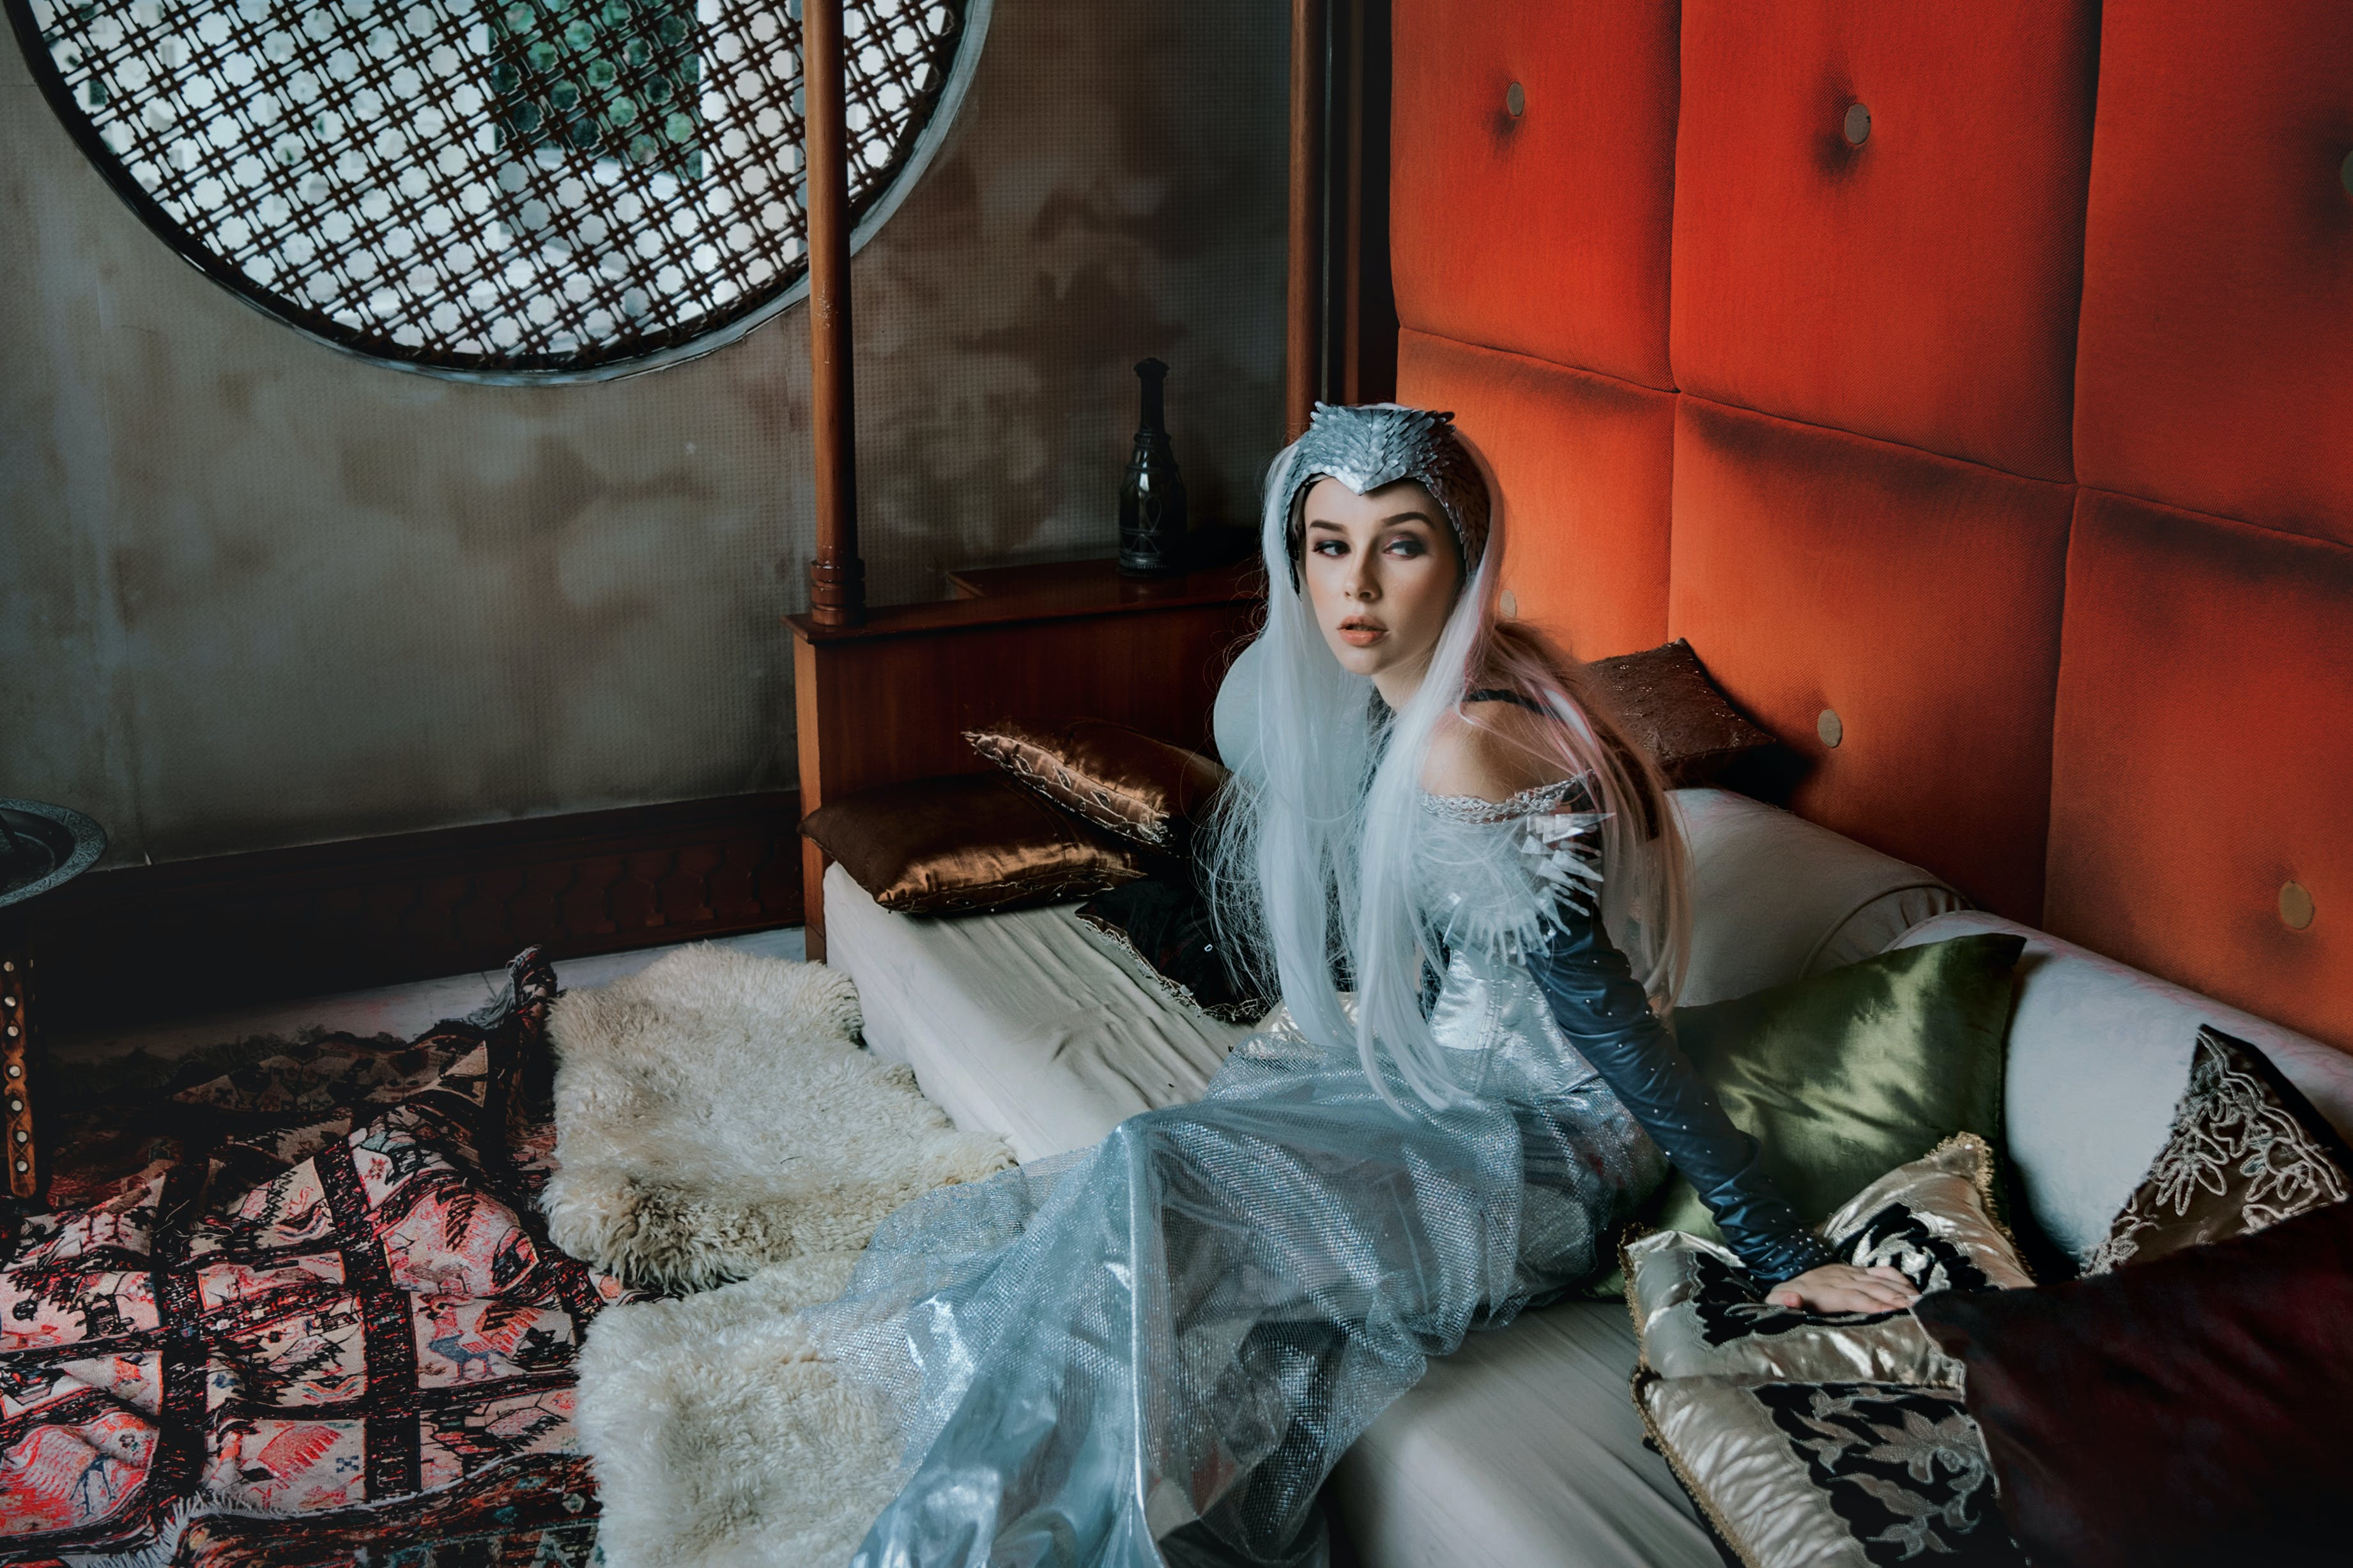 Woman in Silver Dress Sitting on Bed